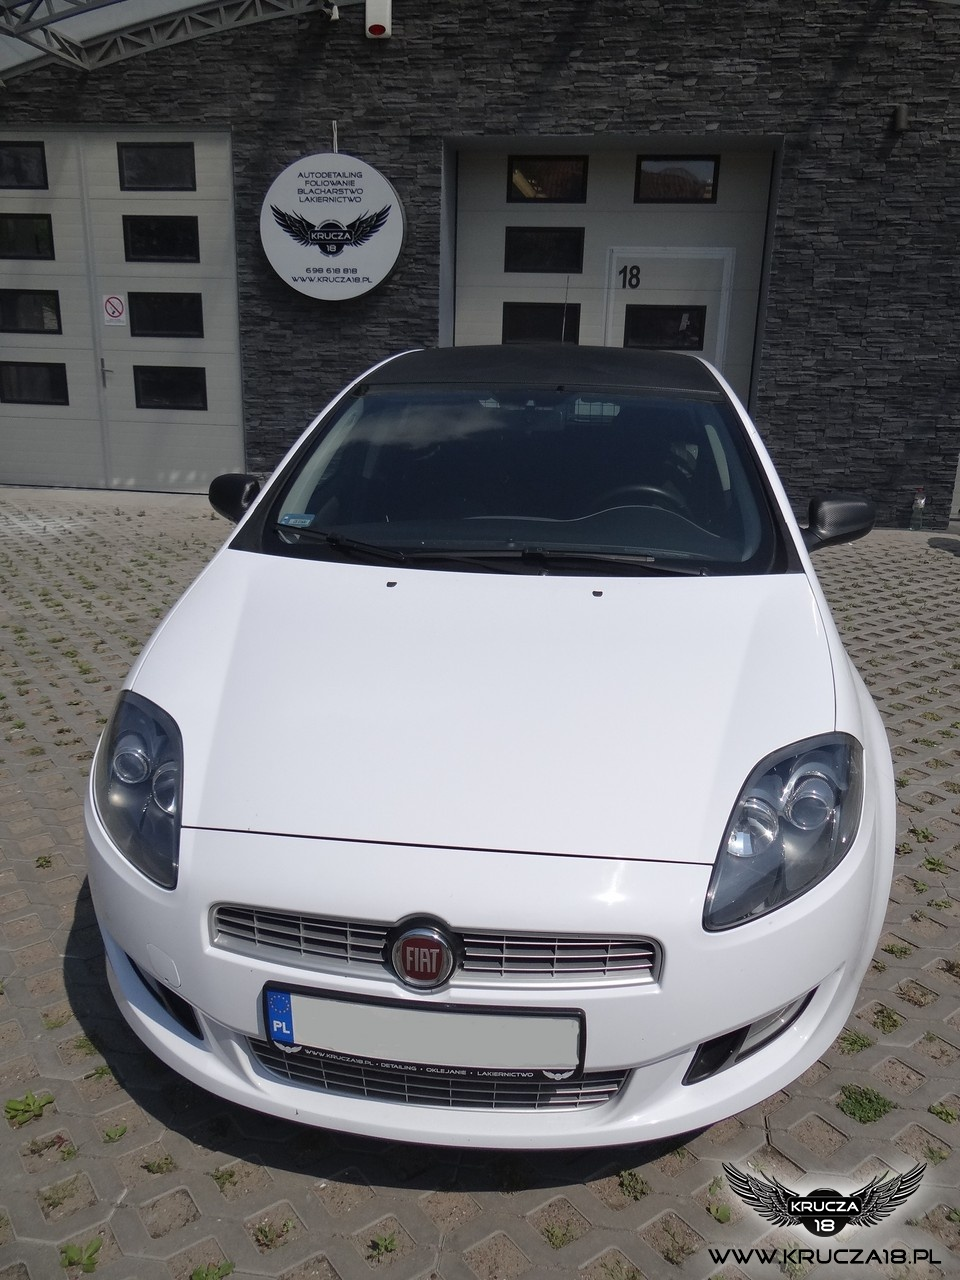 Fiat Bravo - White Gloss & Carbon